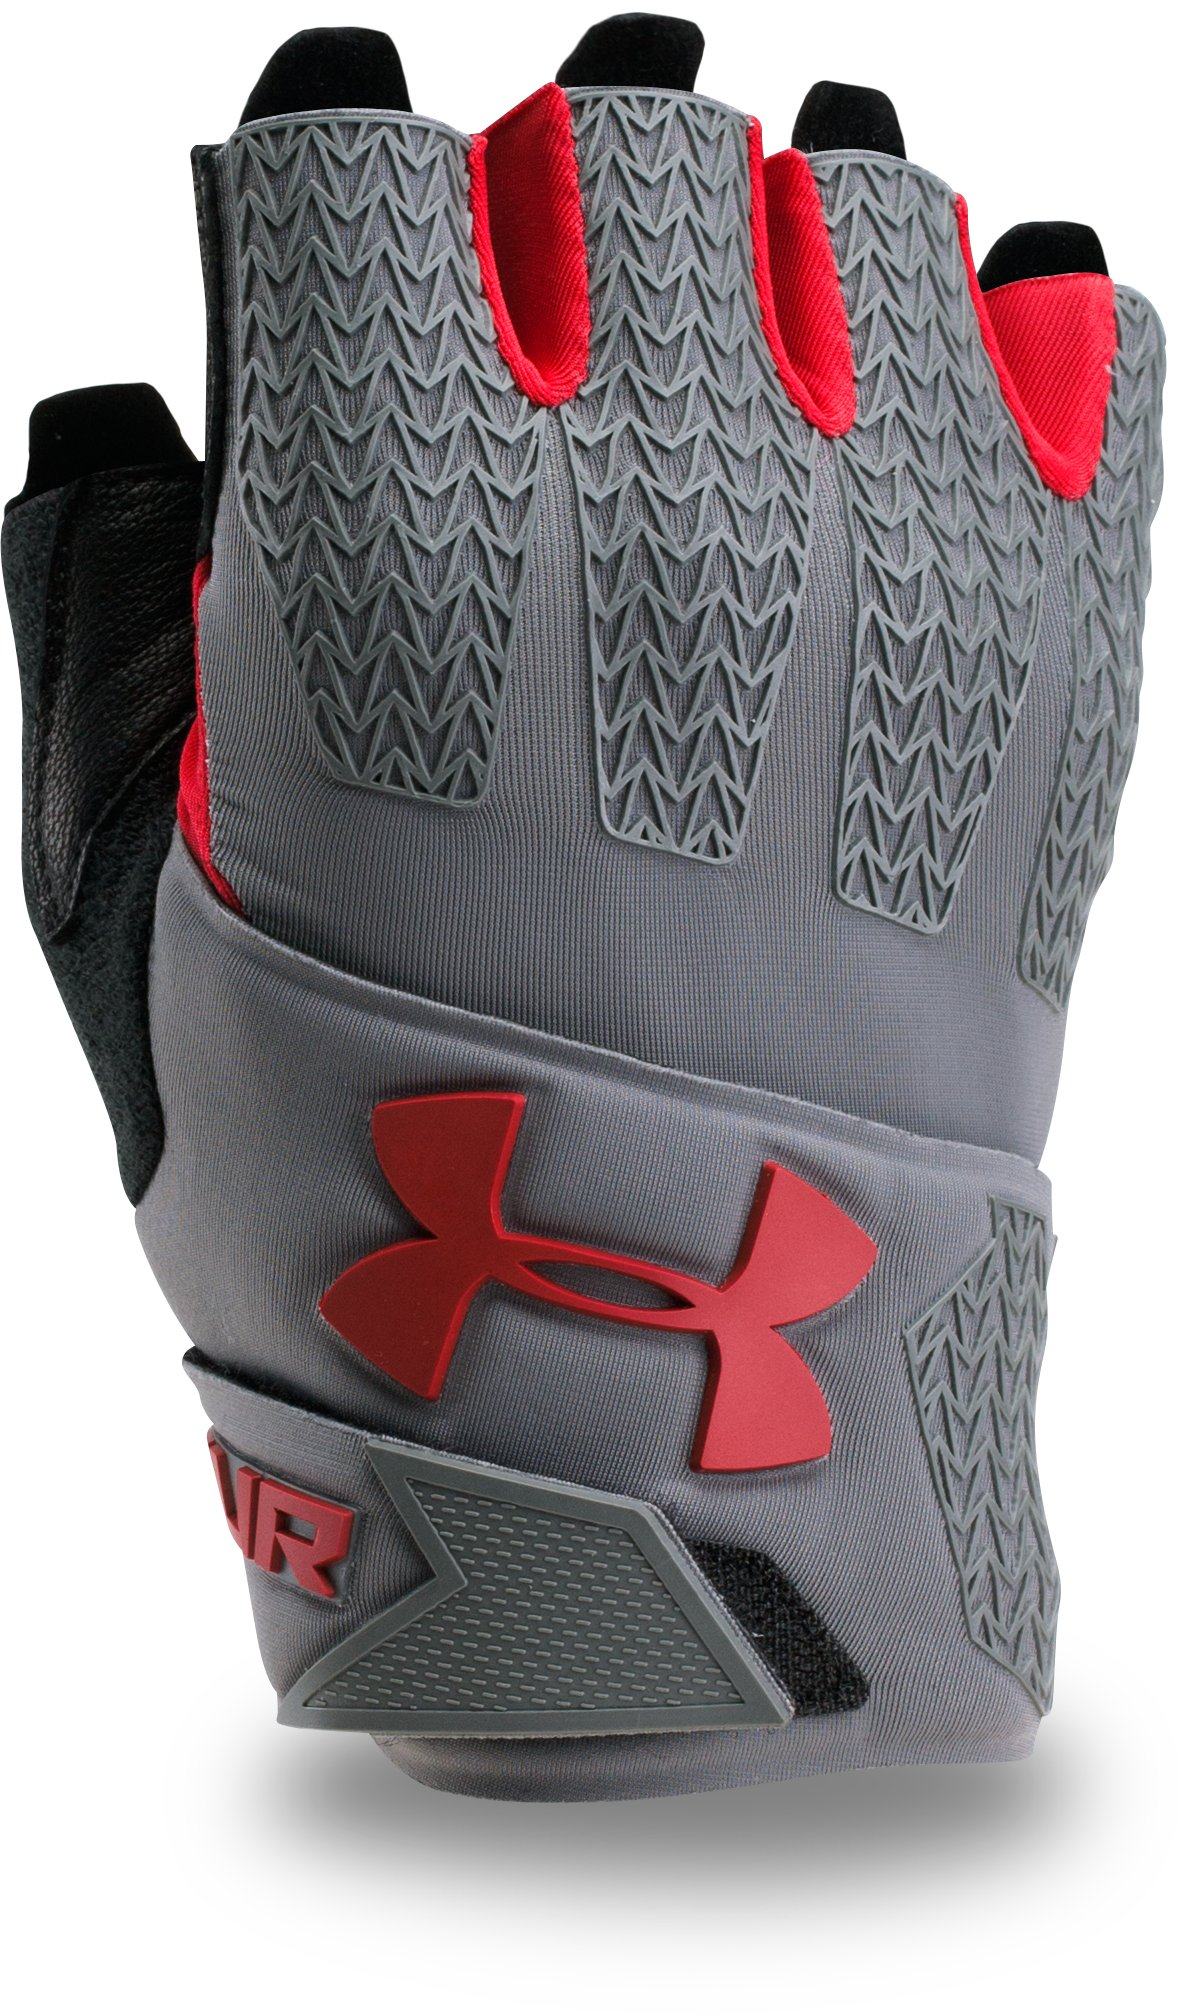 graphite gloves Men's UA ClutchFit® Resistor Training Gloves Sturdy, comfortable....These gloves look nice and fit nice and snug....grips well and gives alot of comfort.